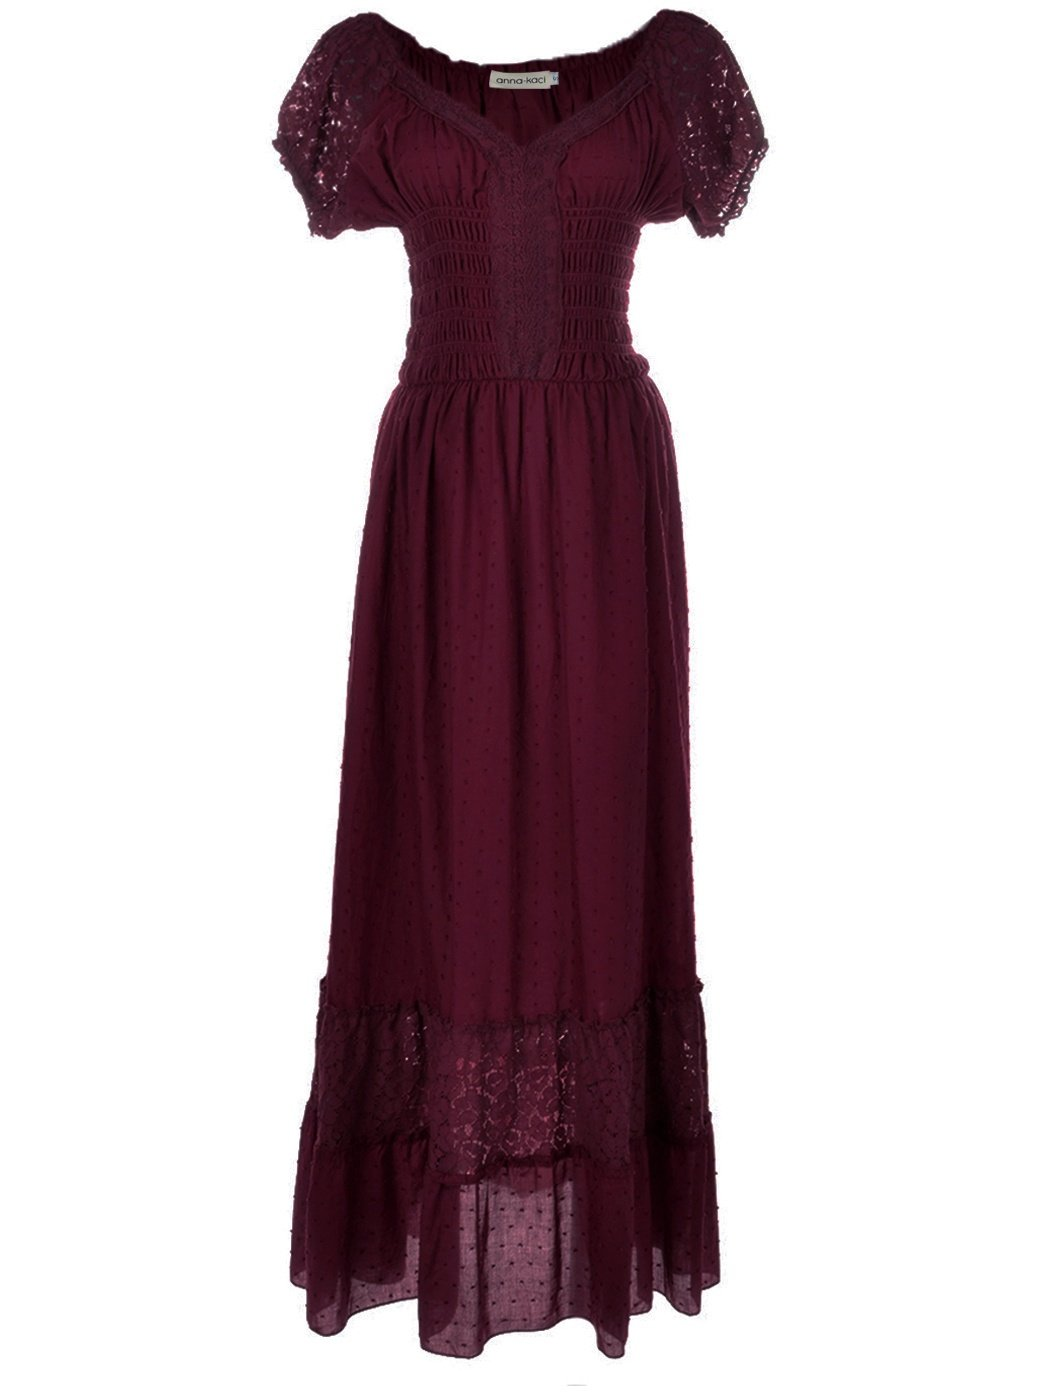 Renaissance Maiden Inspired Burgundy Lace Cap Sleeve Trim Chemise Underdress - DeluxeAdultCostumes.com